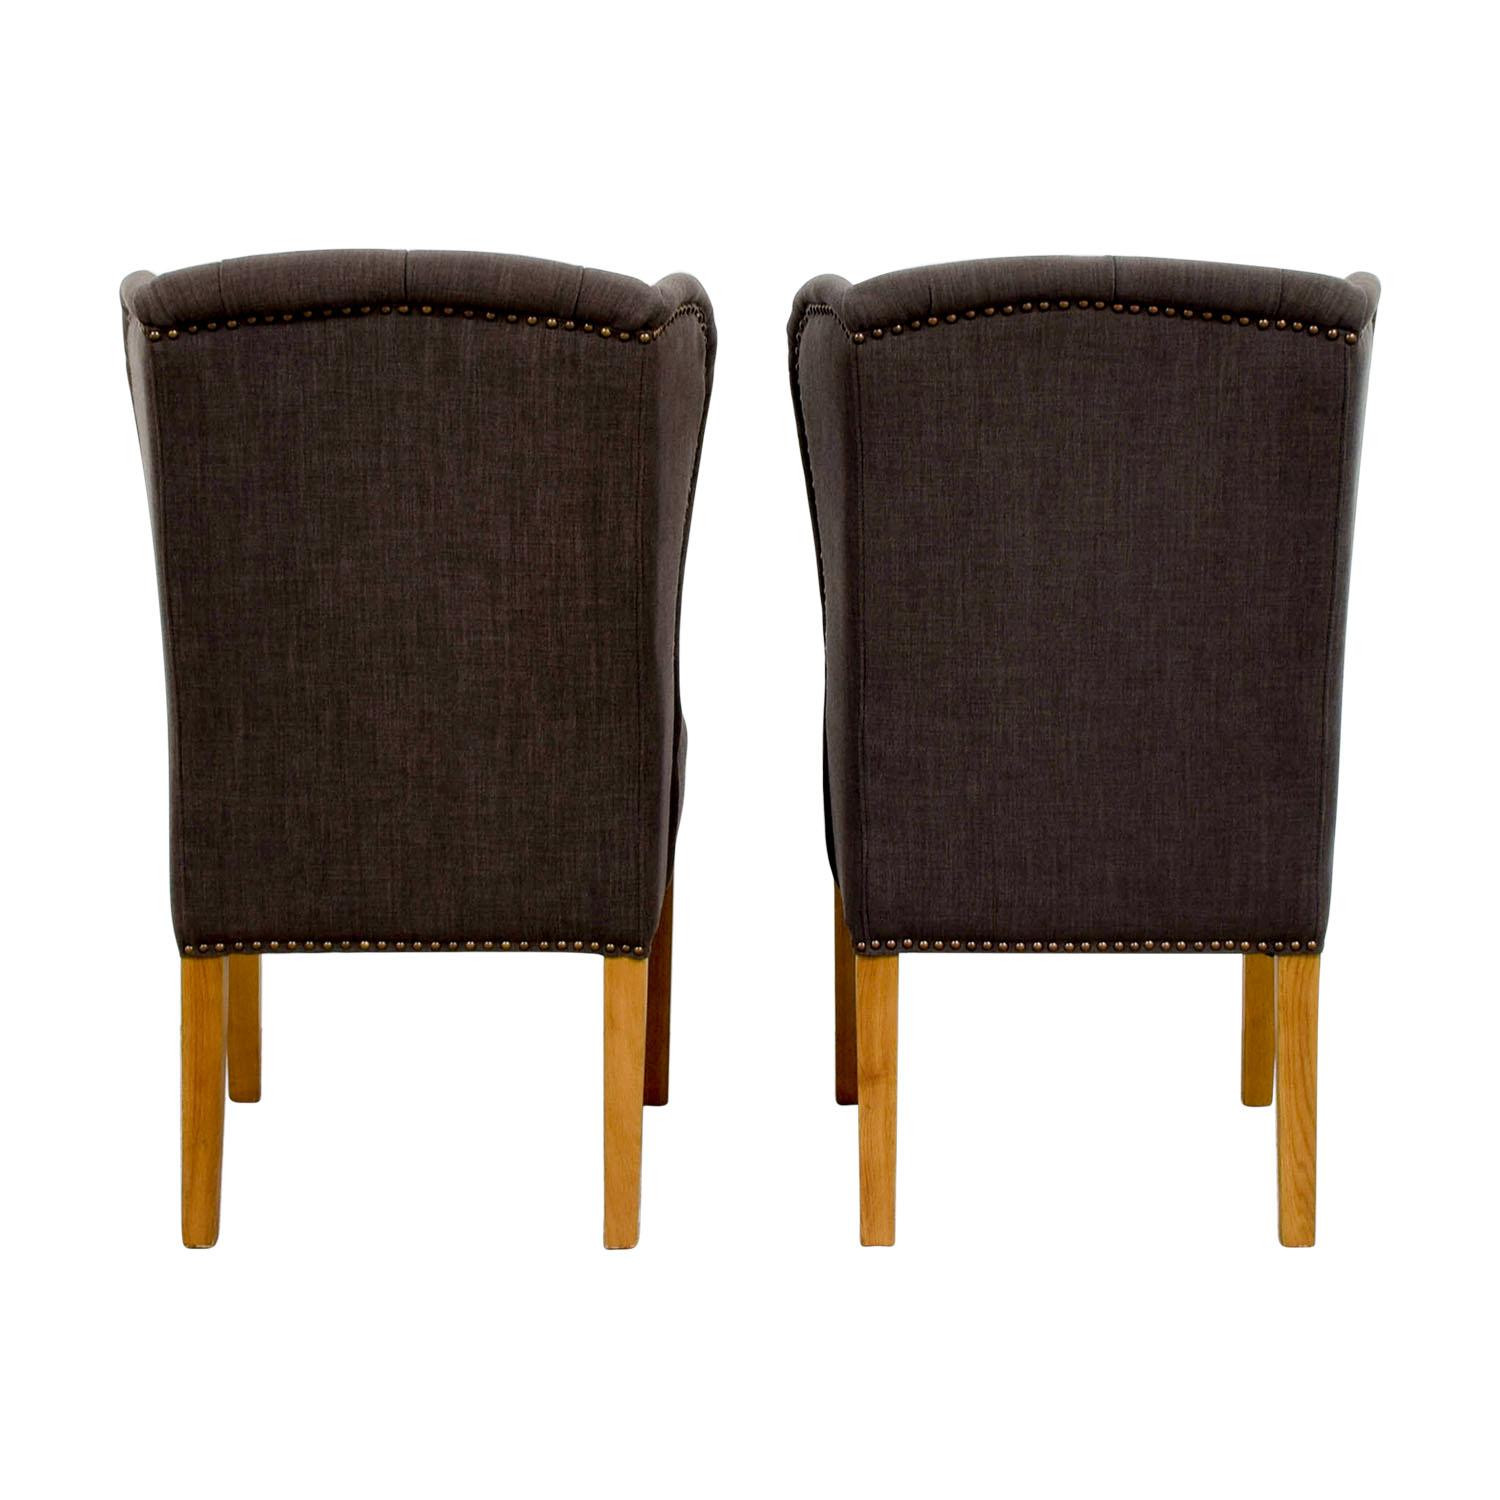 Greyson Greyson Grey Tufted Chairs coupon